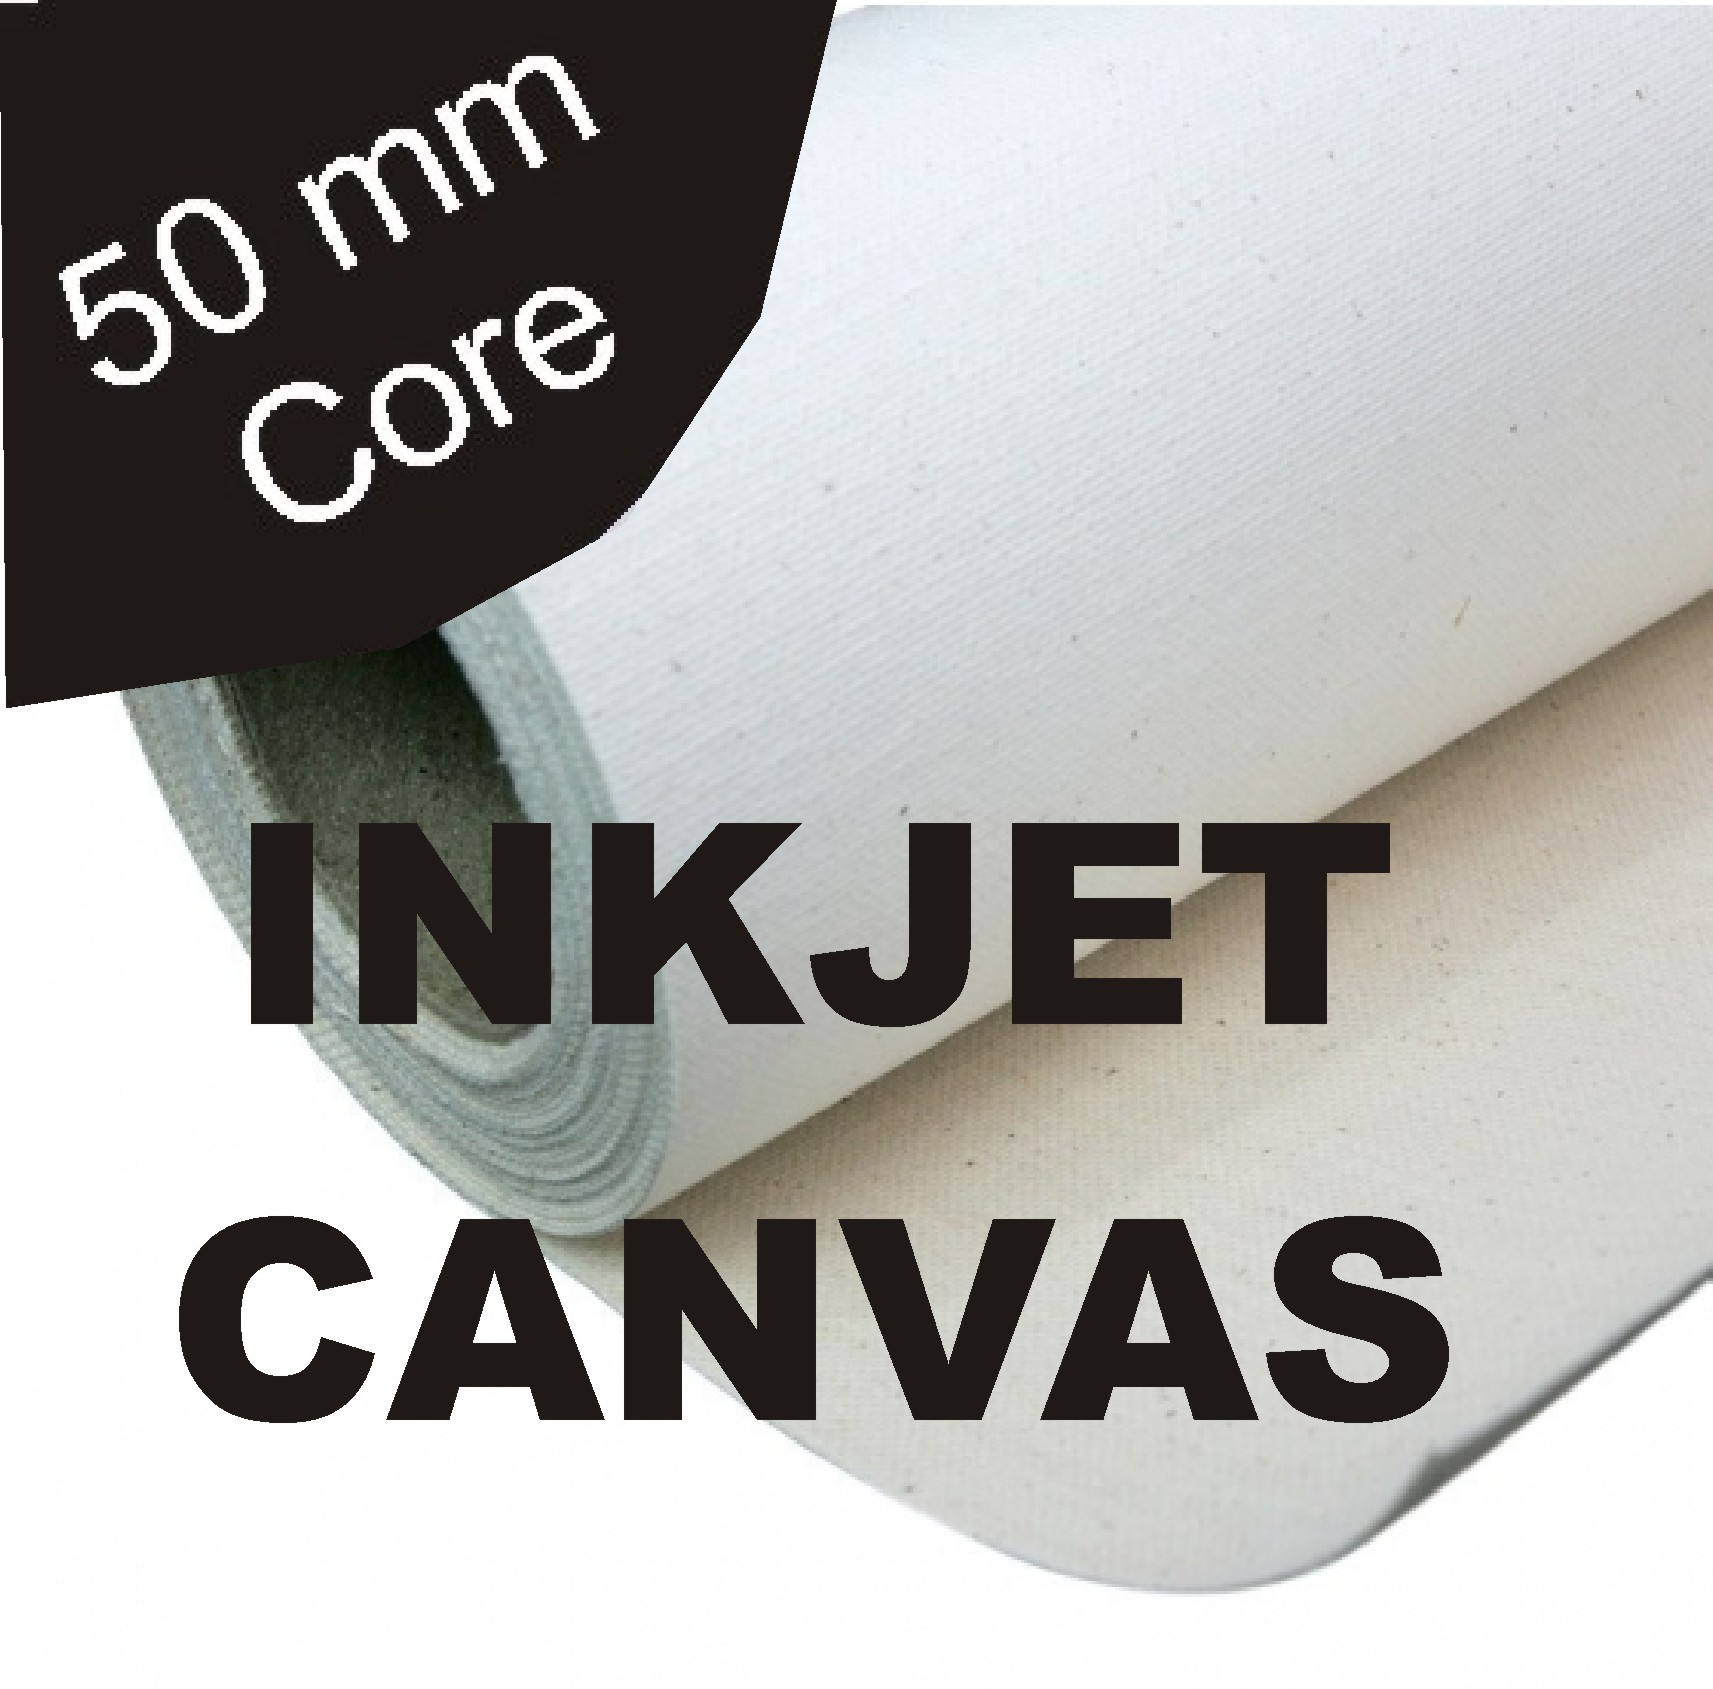 graphic regarding Printable Canvas identify Inkjet-Cotton-Canvas-350g 1524mm extensive inkjet printable canvas